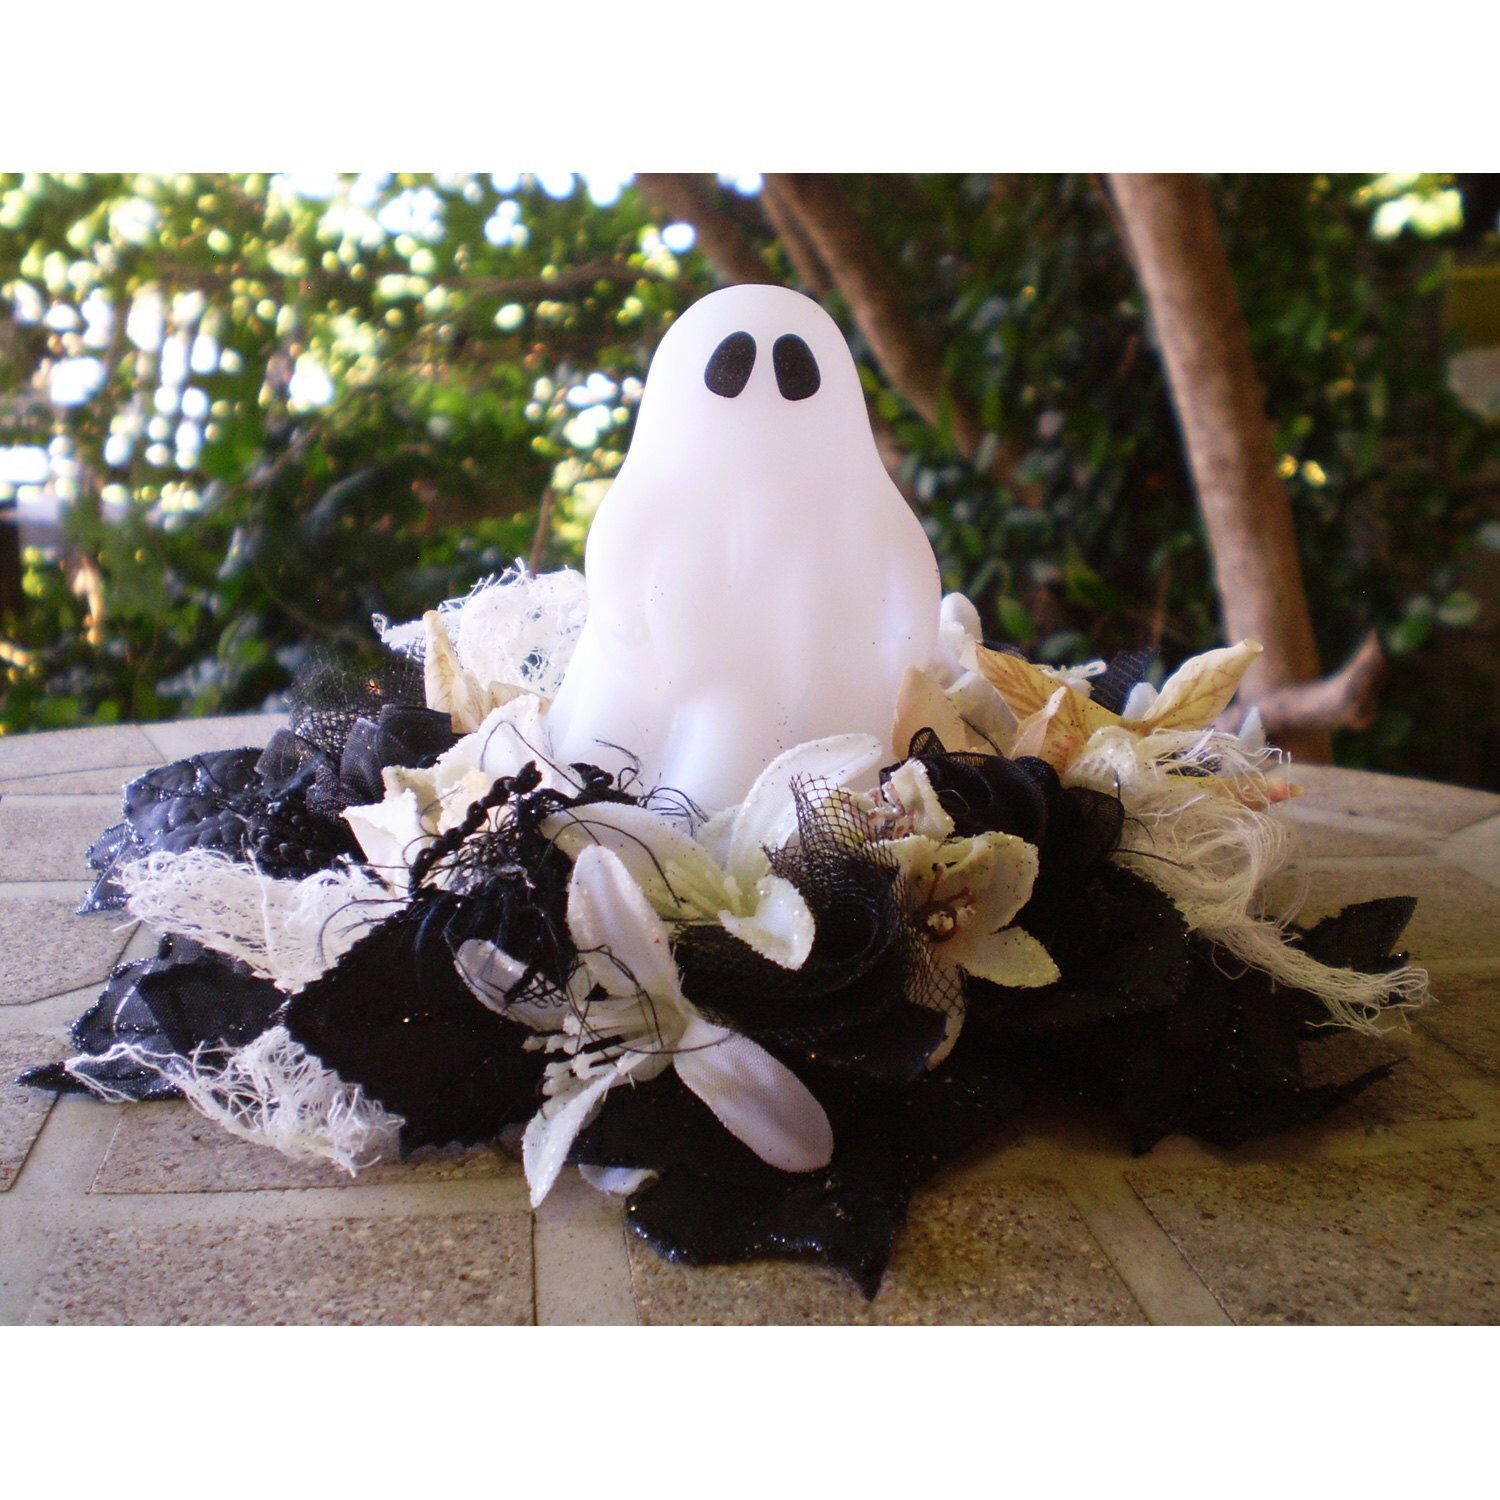 light up led glowing ghost floral centerpiece flower arrangement light up led glowing ghost floral centerpiece flower arrangement halloween decoration shabby chic fall autumn spooky home decor